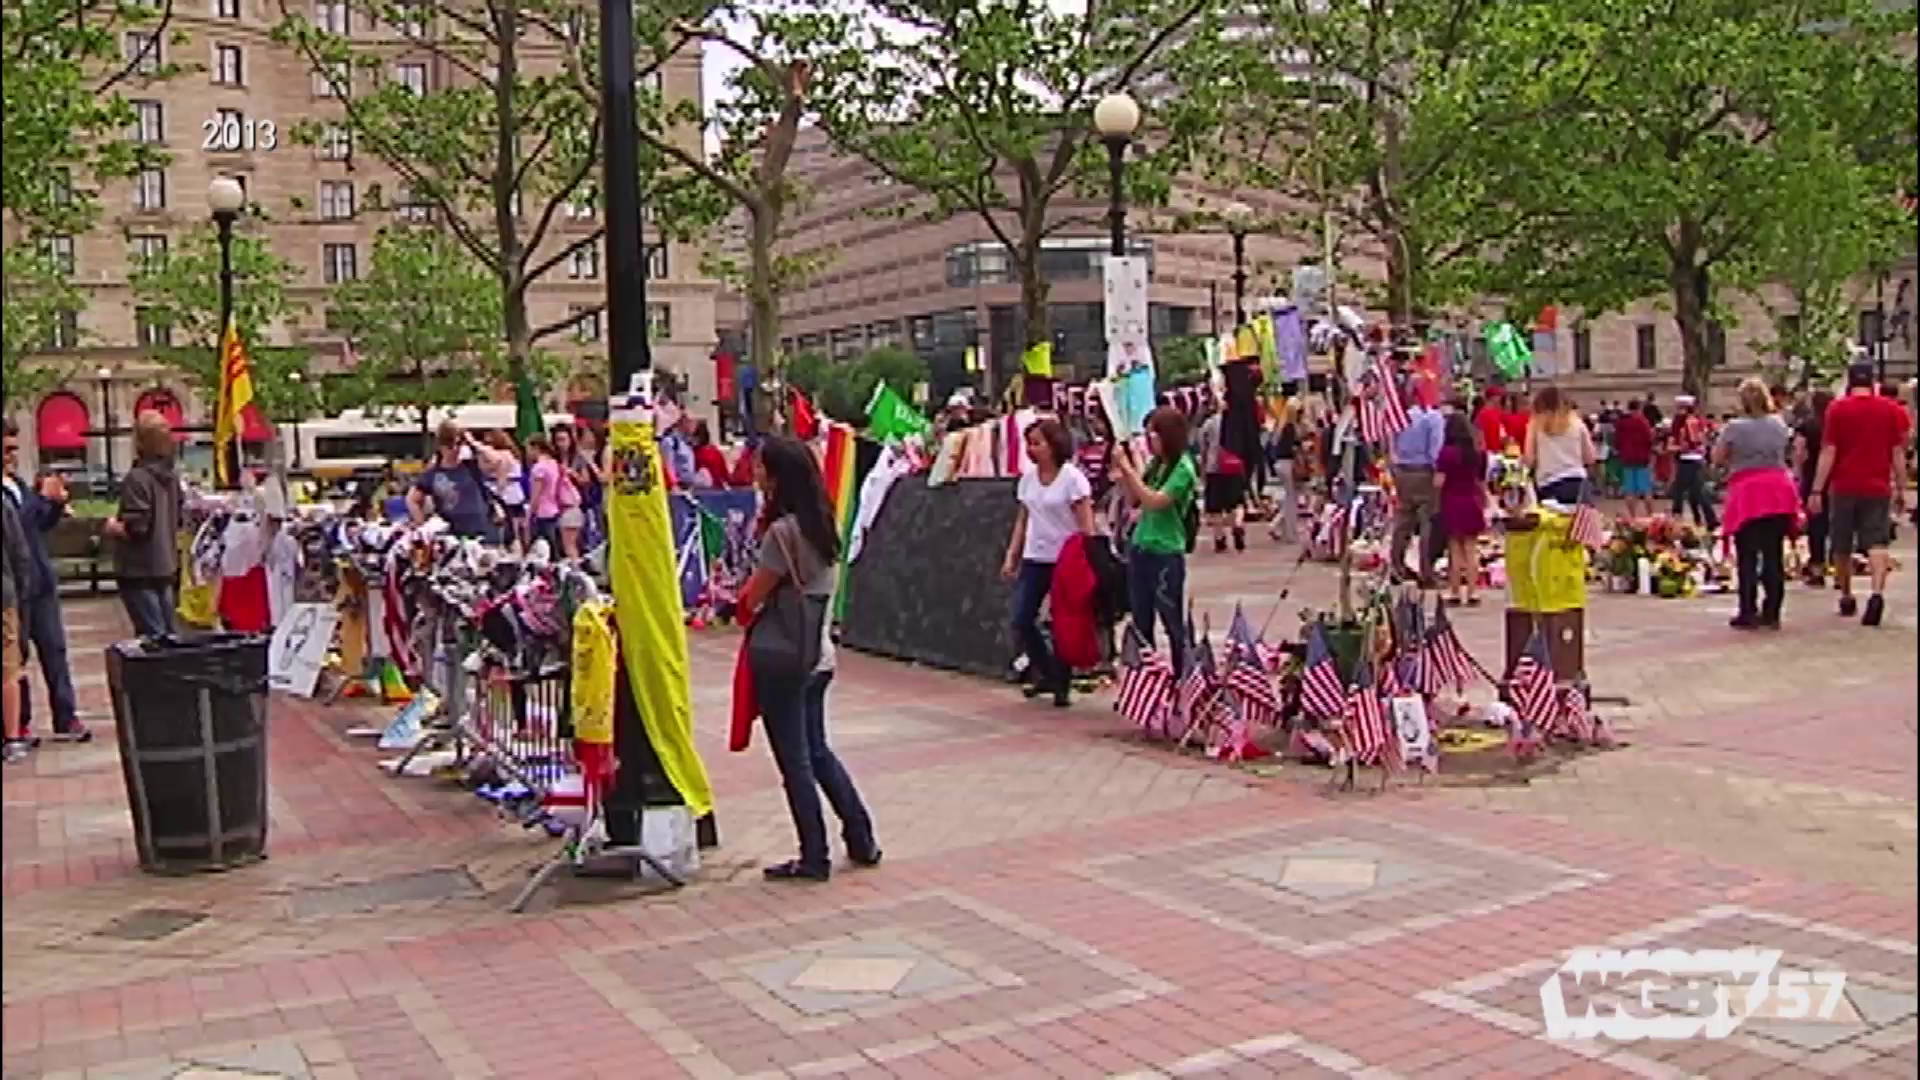 WGBH journalist Emily Rooney planned to meet up with a friend in Boston's Back Bay on Patriots Day in 2013. Instead, she and WCVB's Maria Stephanos rushed towards the sound of chaos at the Marathon finish line. Five years later, the pair met to reflect on the the Boston Marathon Bombing.